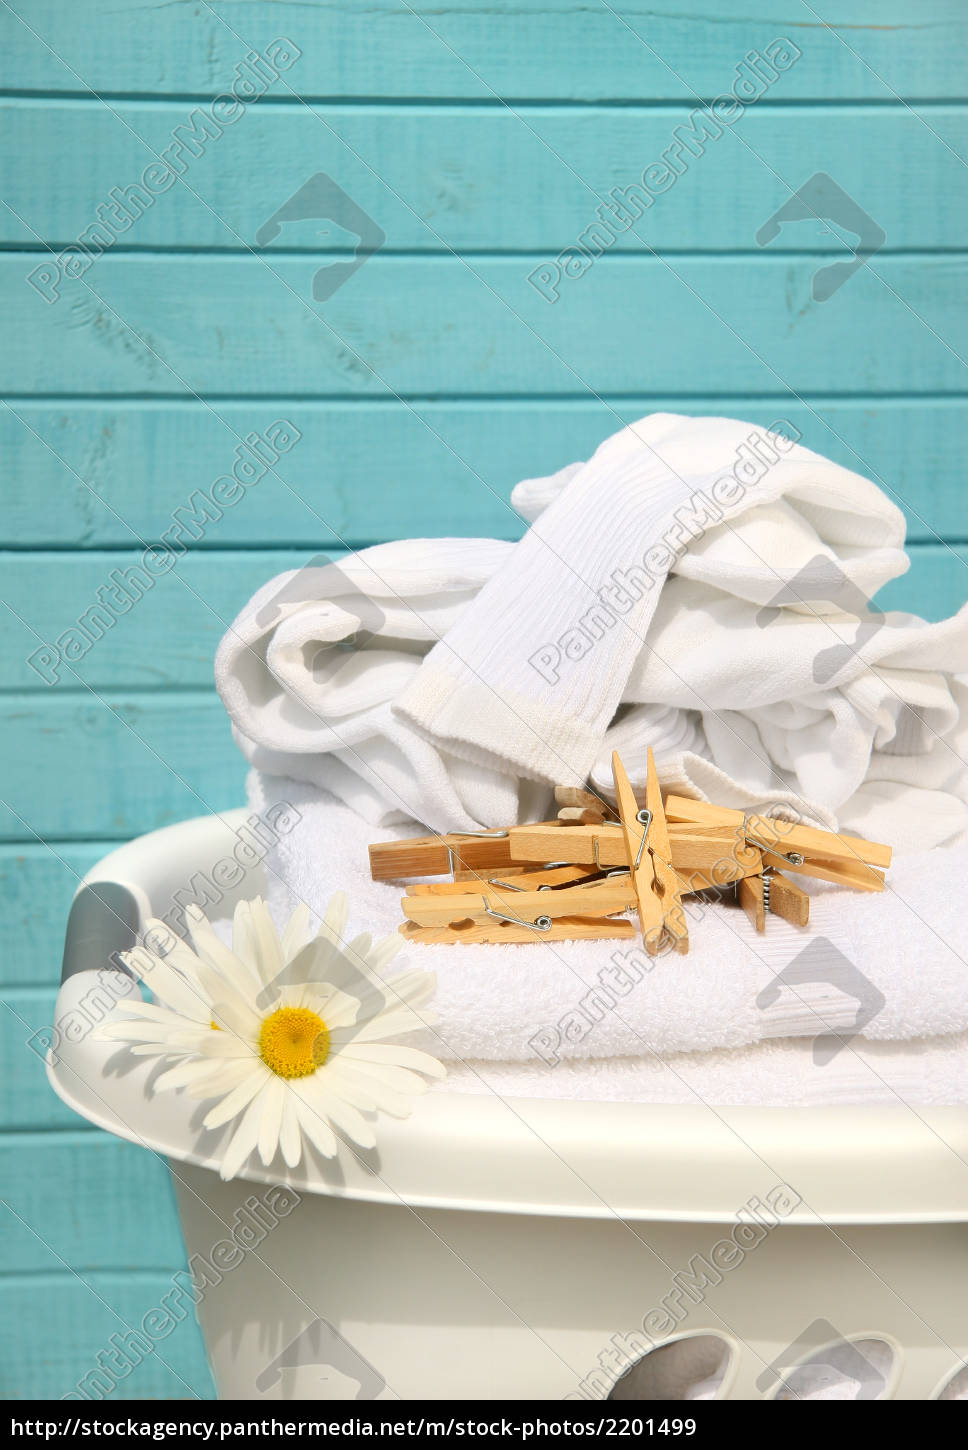 white, , basket, with, laundry - 2201499